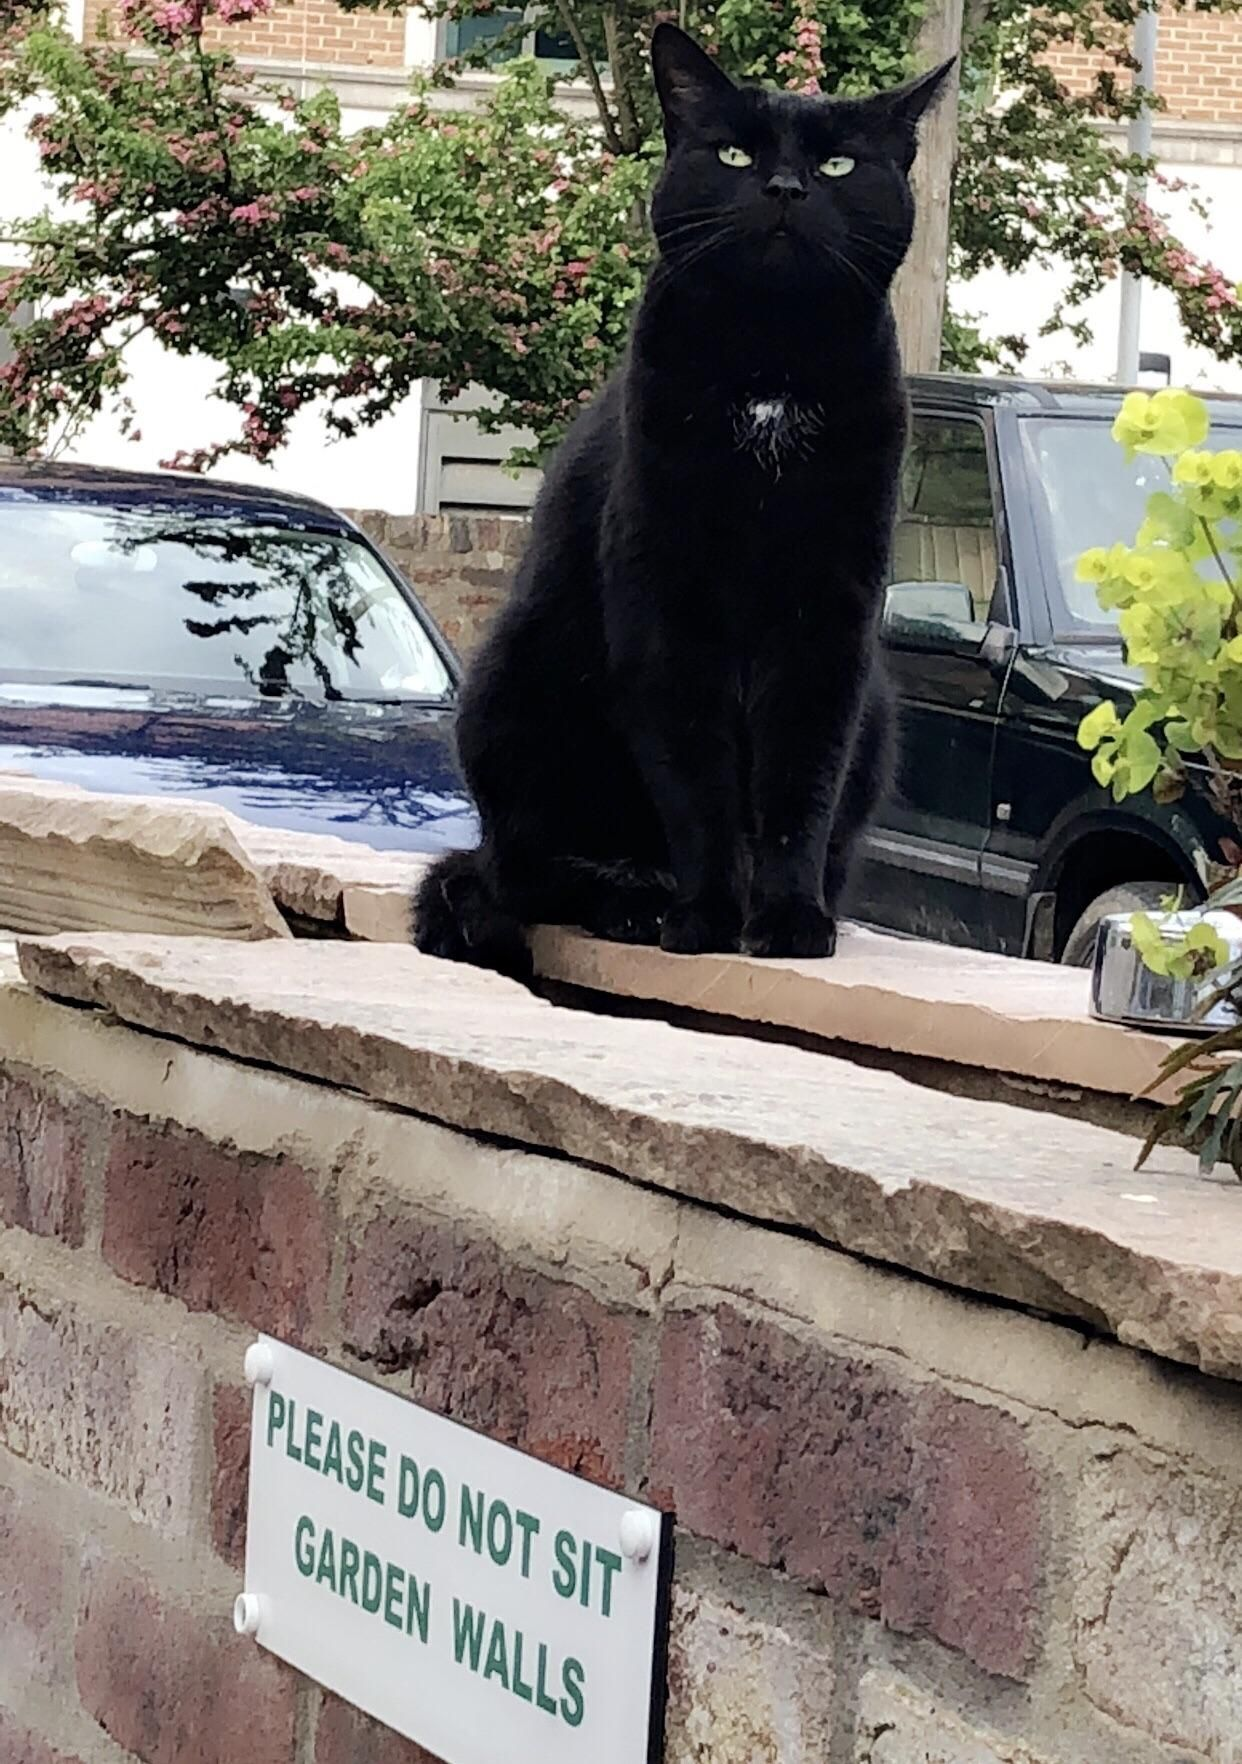 This Is Salem Who Lives In A Beer Garden In York And Sits Patiently For Leftovers Baby Cats Pretty Cats Silly Cats